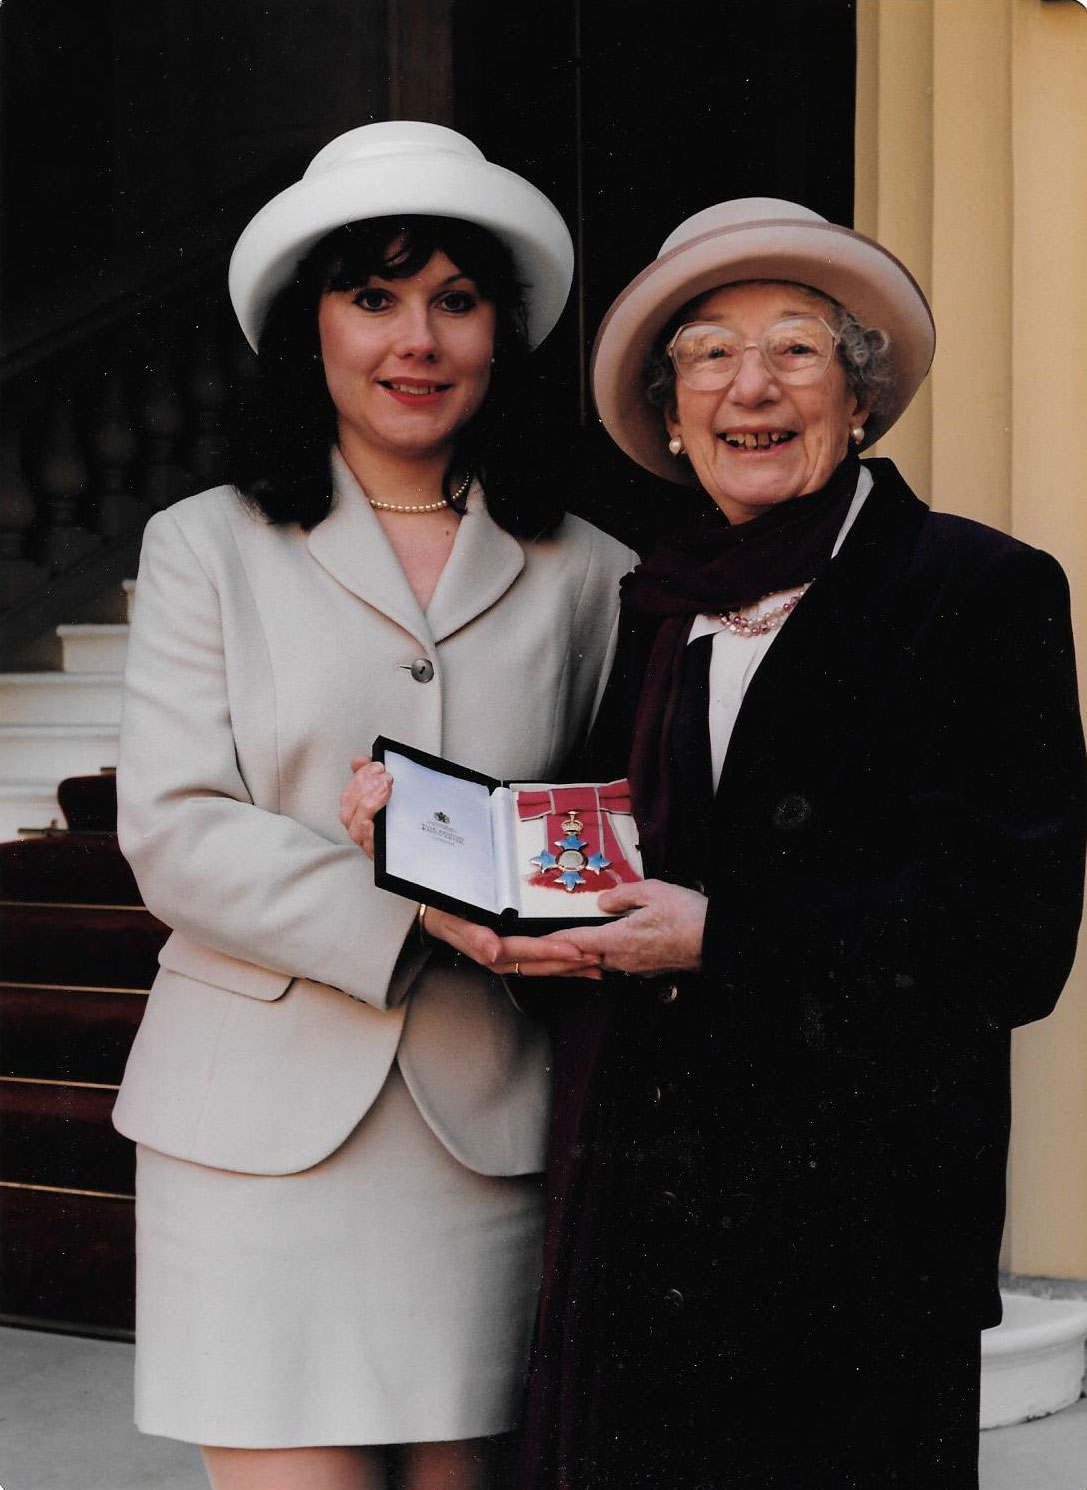 Two women stood together outside holding a box with a medal in it